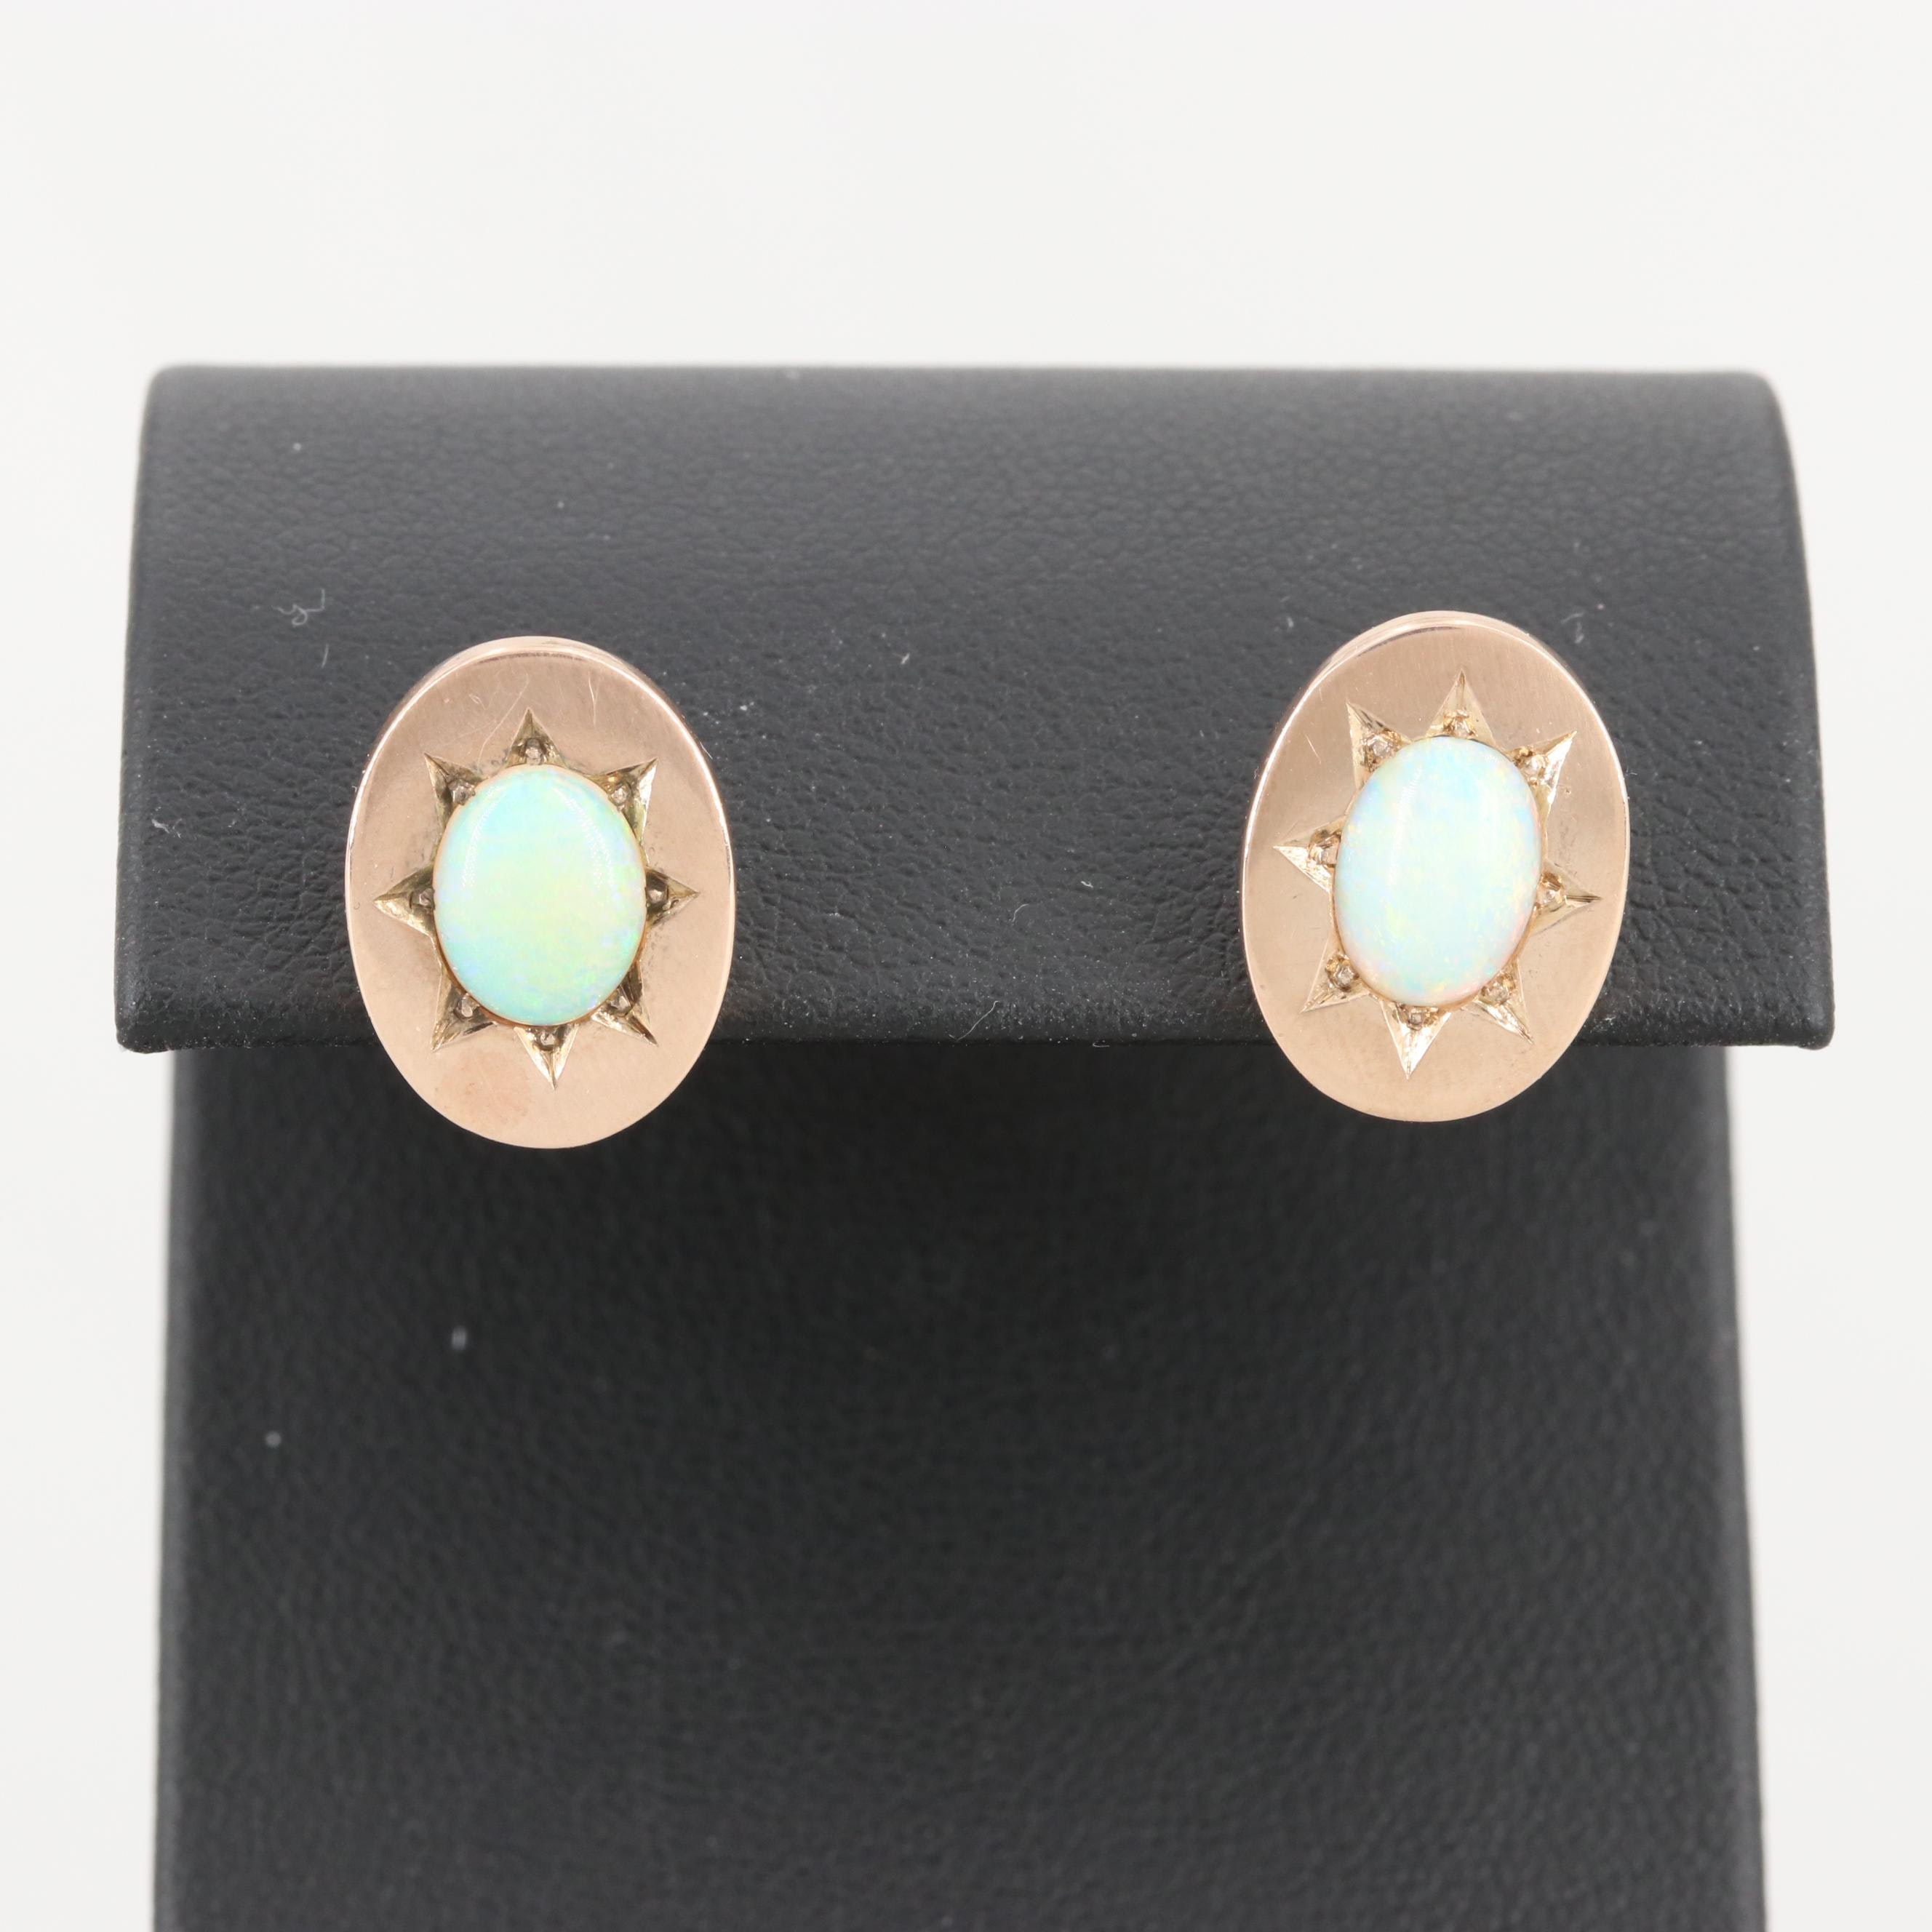 Antique 9K and 14K Yellow Gold Opal Earrings